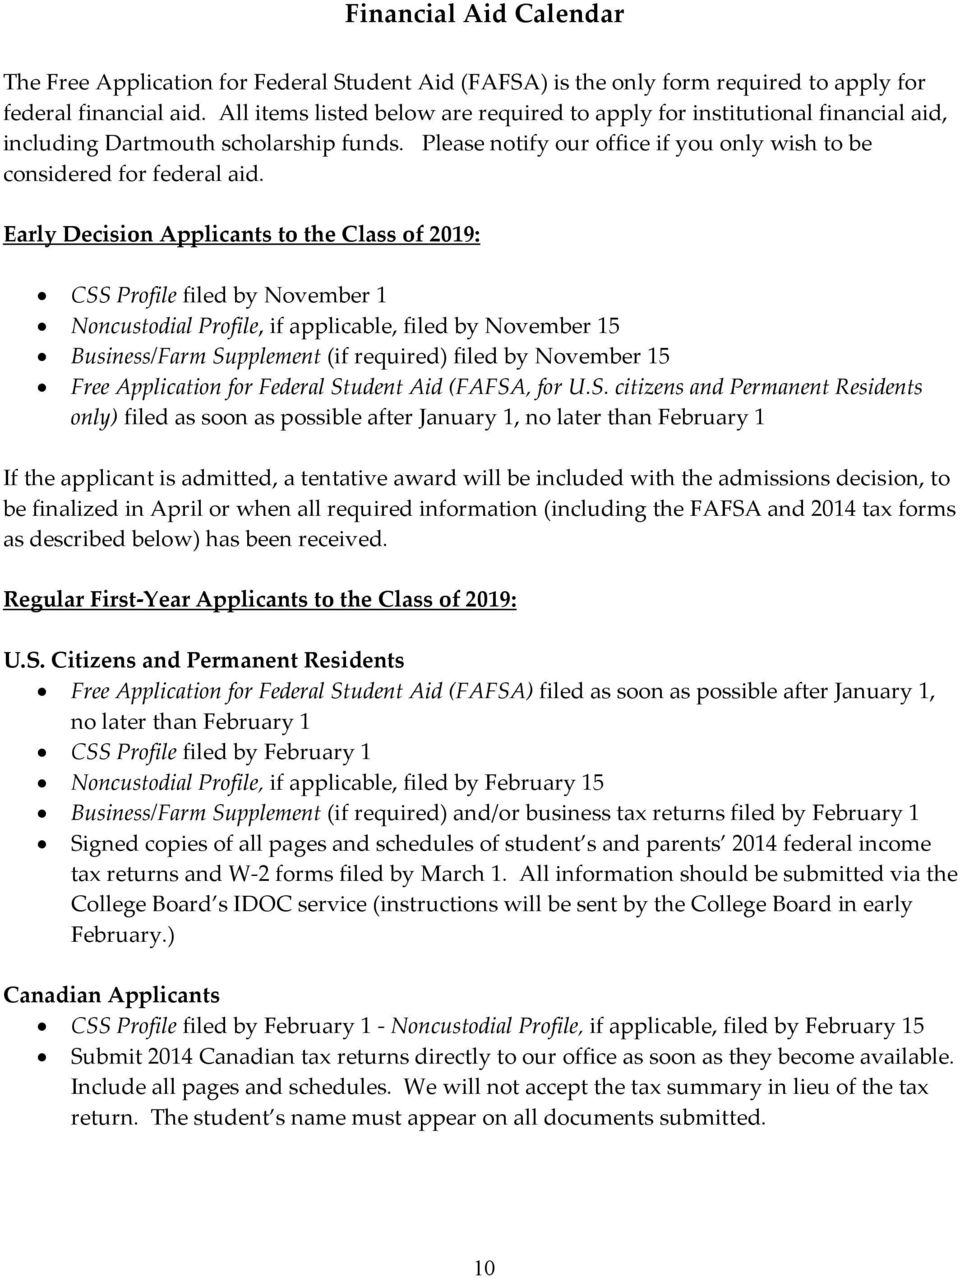 Early Decision Applicants to the Class of 2019: CSS Profile filed by November 1 Noncustodial Profile, if applicable, filed by November 15 Business/Farm Supplement (if required) filed by November 15